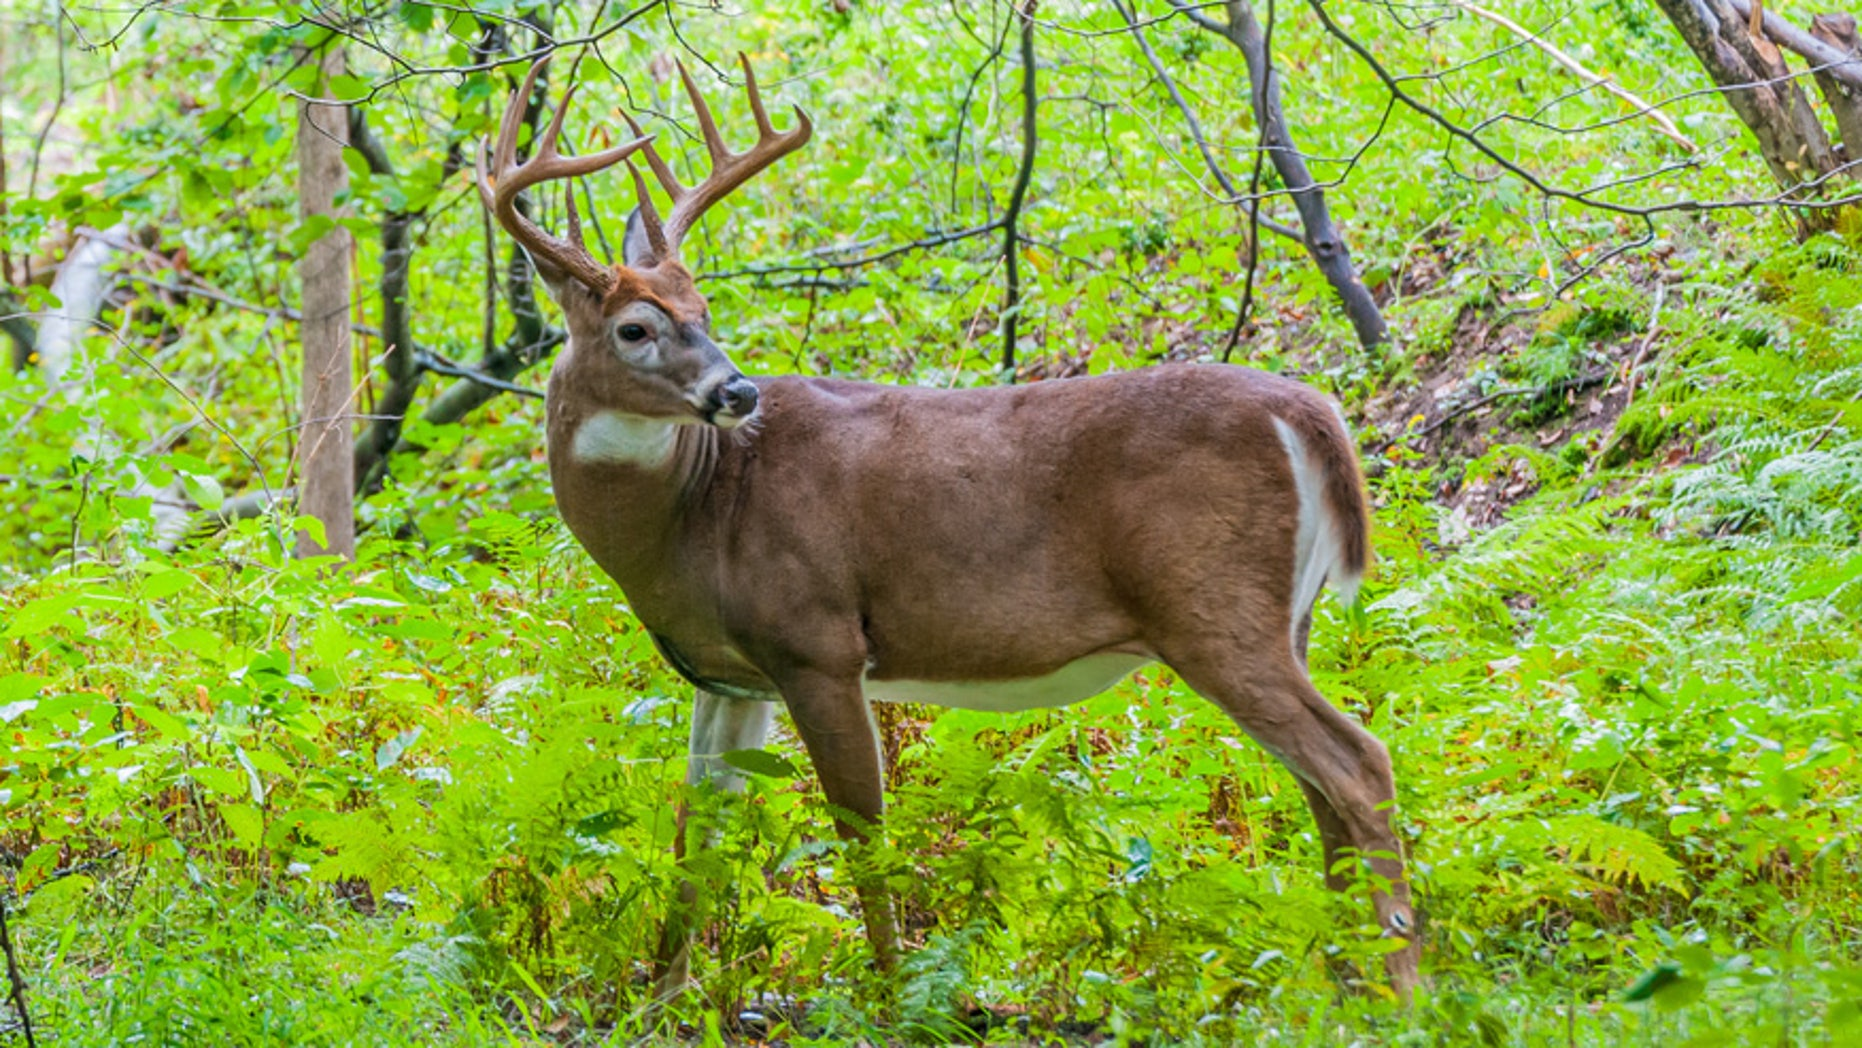 Planning on going deer-hunting this fall? You should start preparing now.